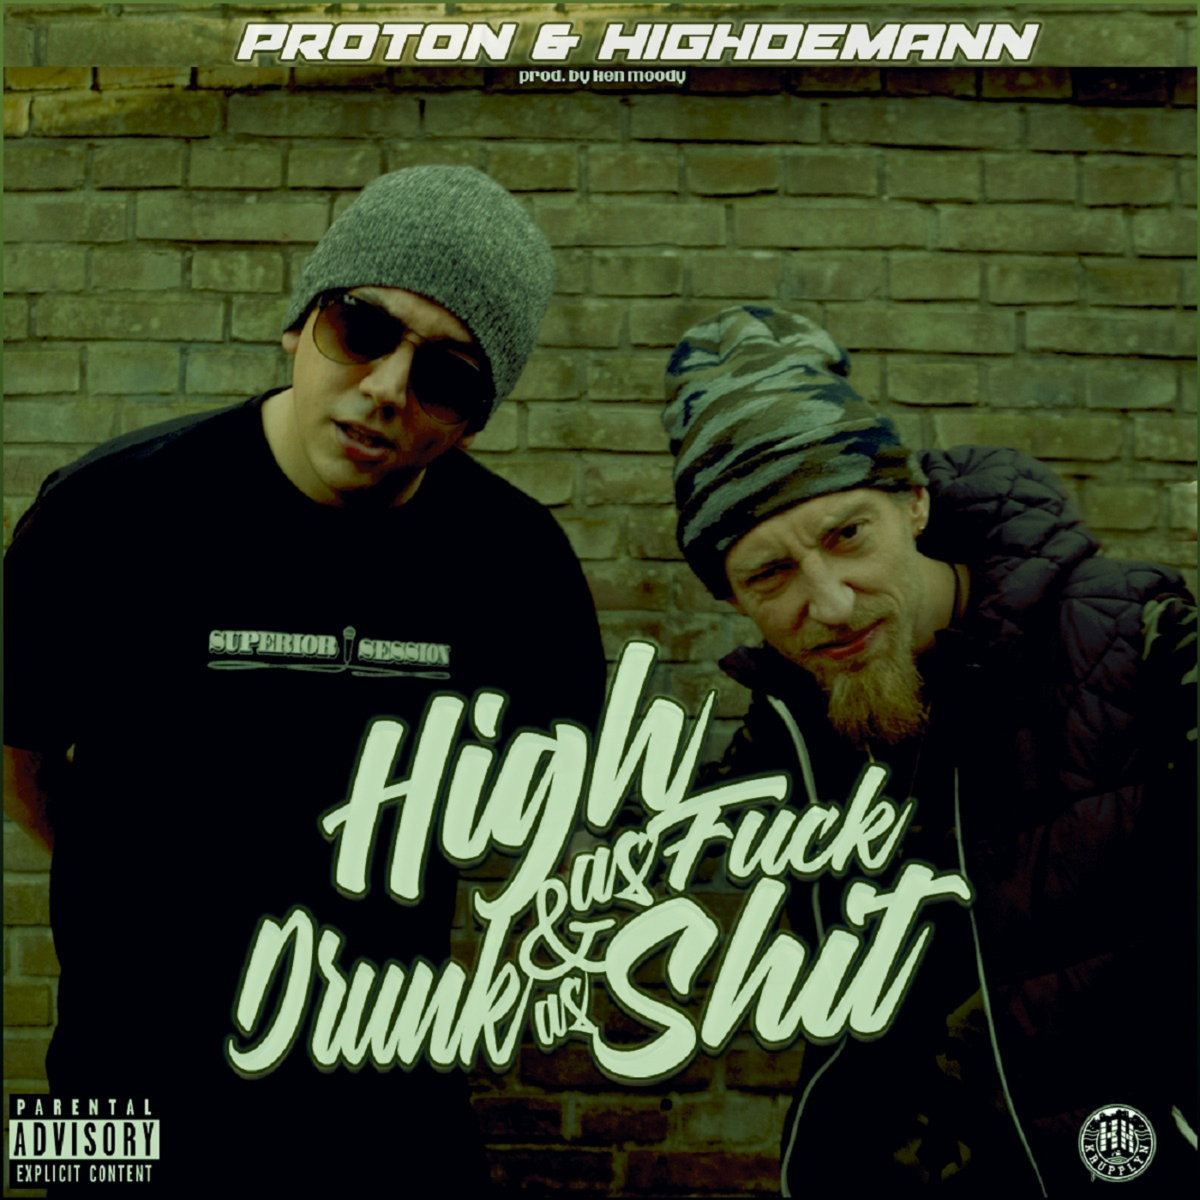 Proton & Highdemann - High as fuck & drunk as shit (02.05.19)